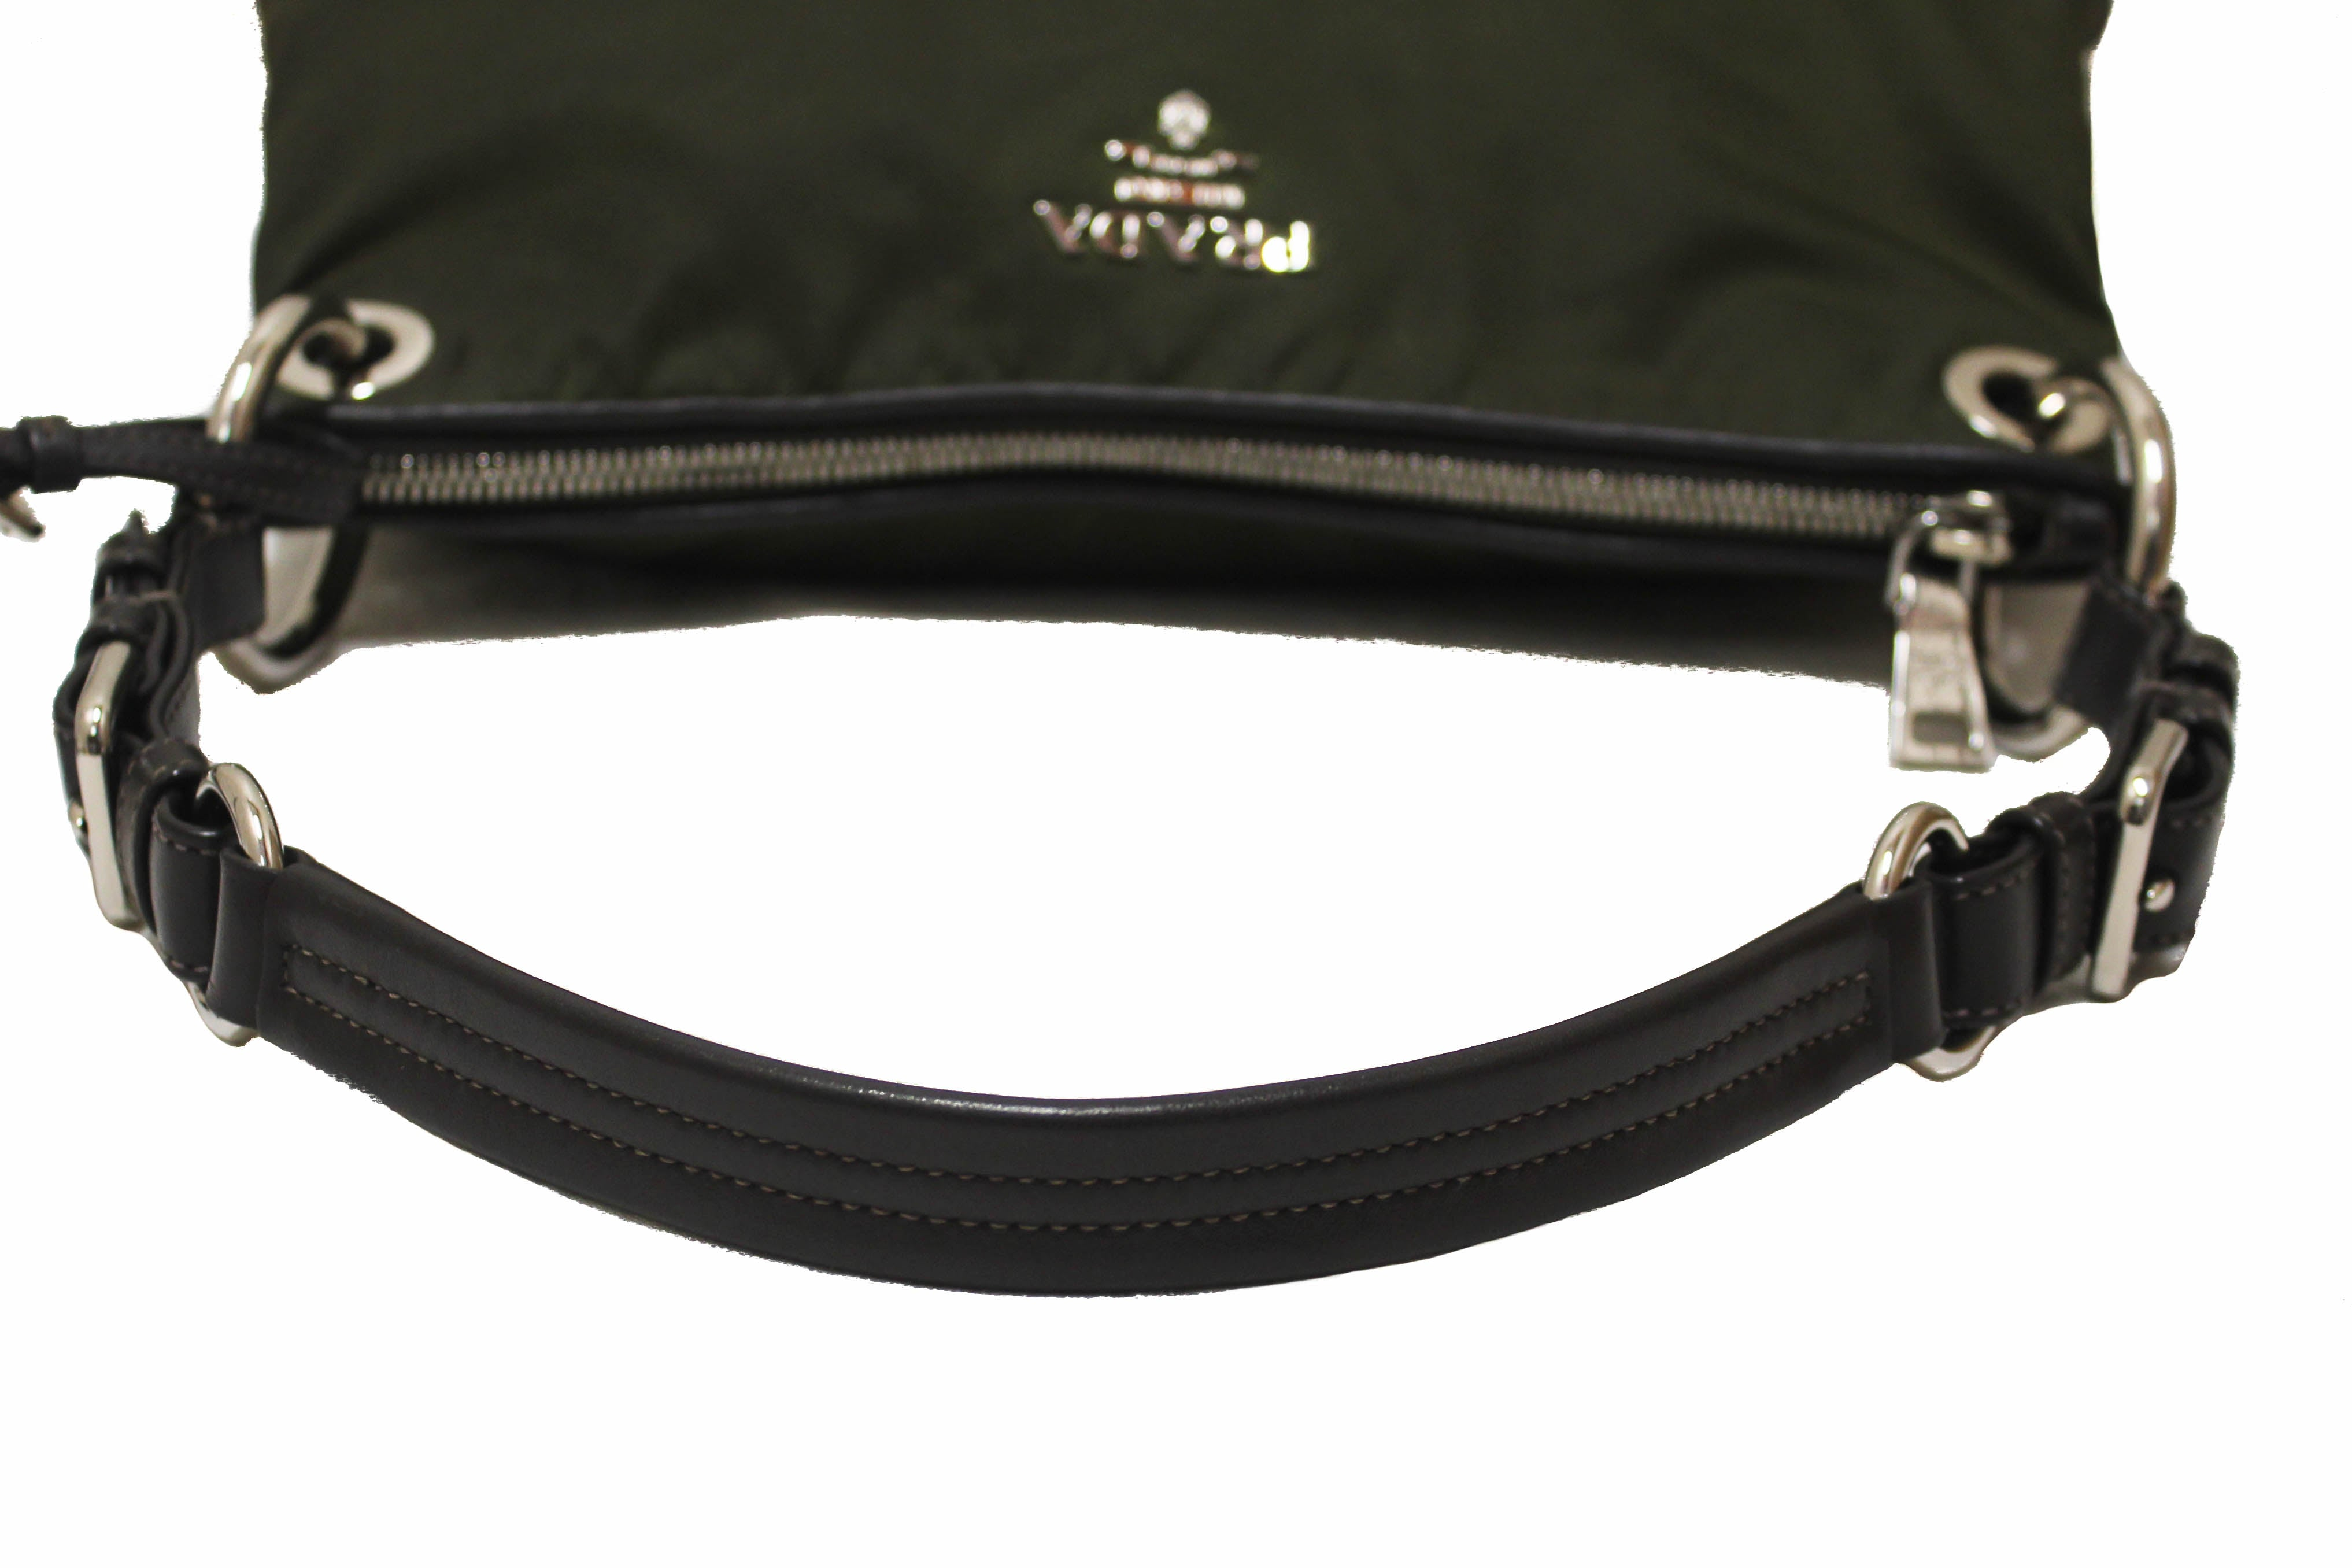 Authentic Prada Green Tessuto Soft Calf Leather and Nylon Shoulder Bag